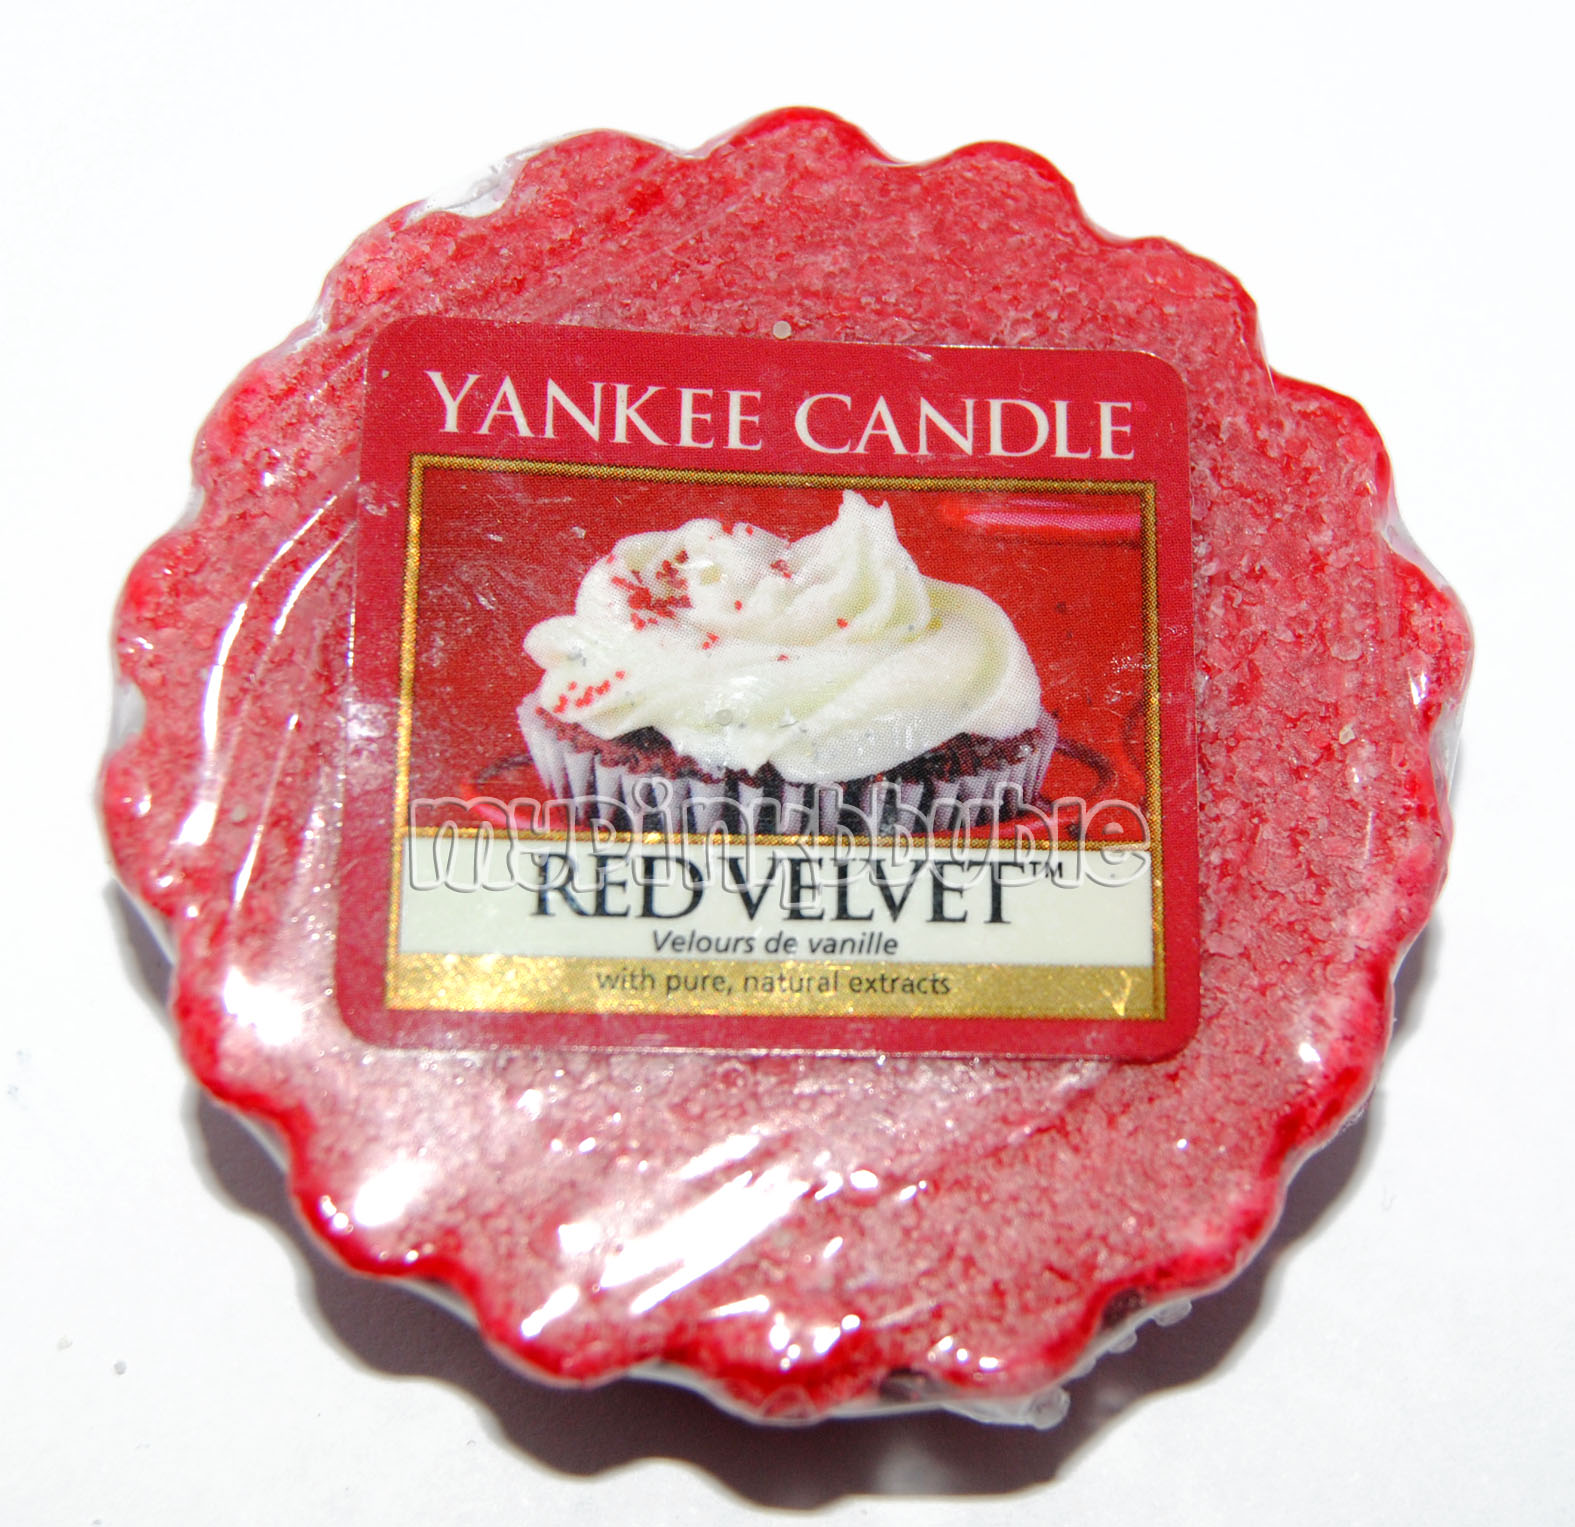 Yankee Candle Red Velvet